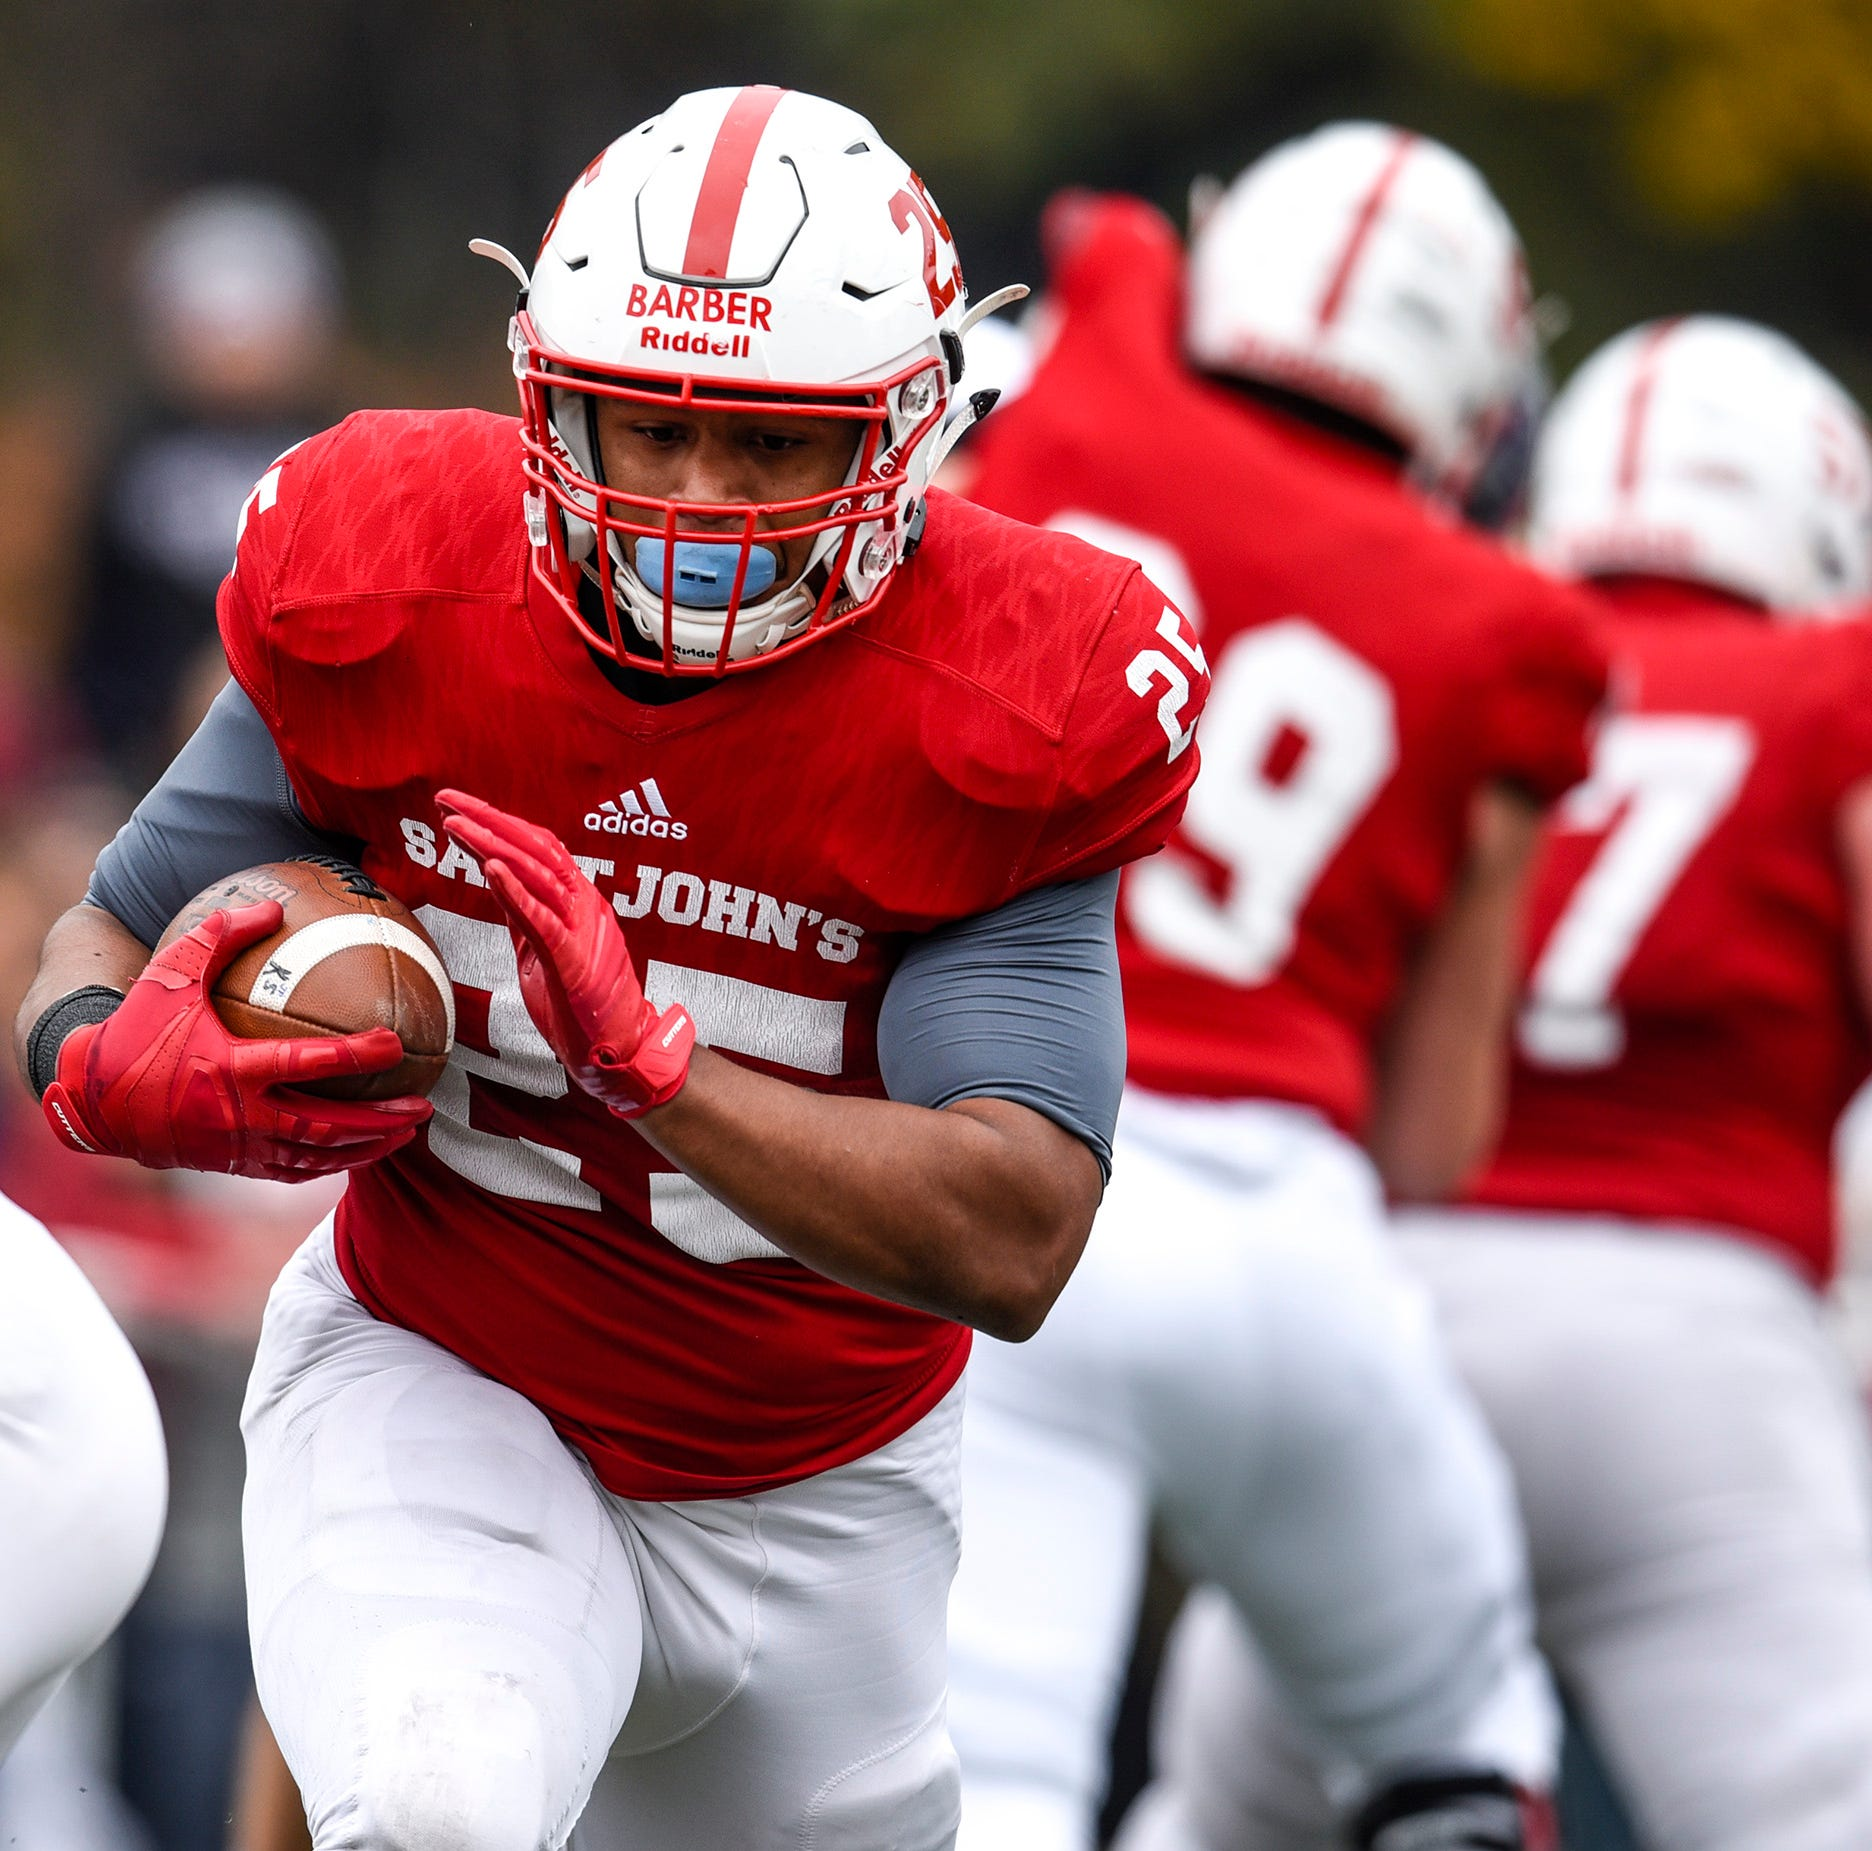 Johnnies' 3-sport star focuses on football